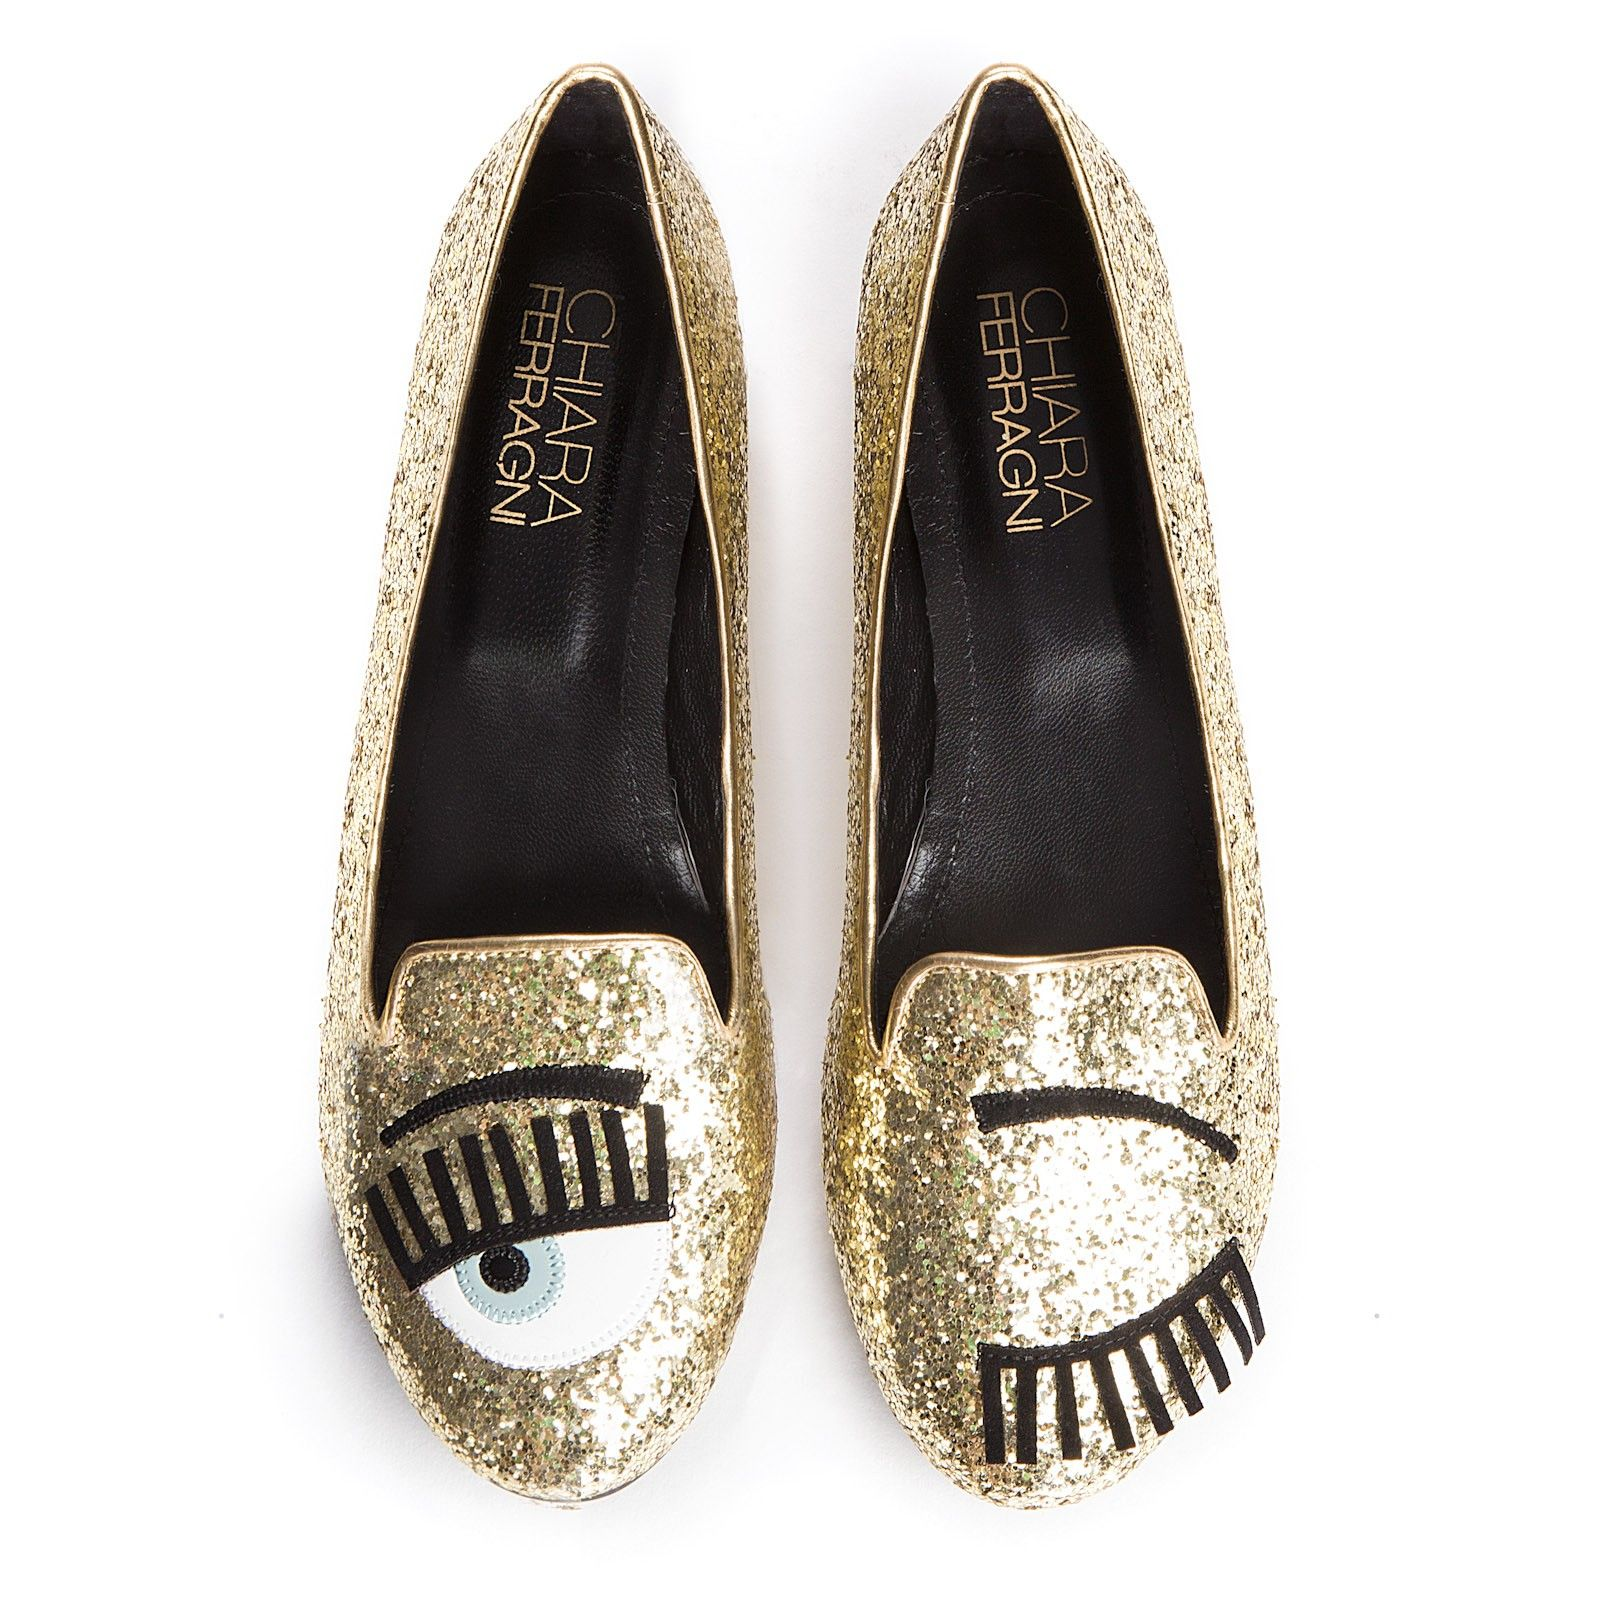 a9c84e499 Chiara Ferragni (The Blonde Salad) flirting gold glitter flats, £170 ...